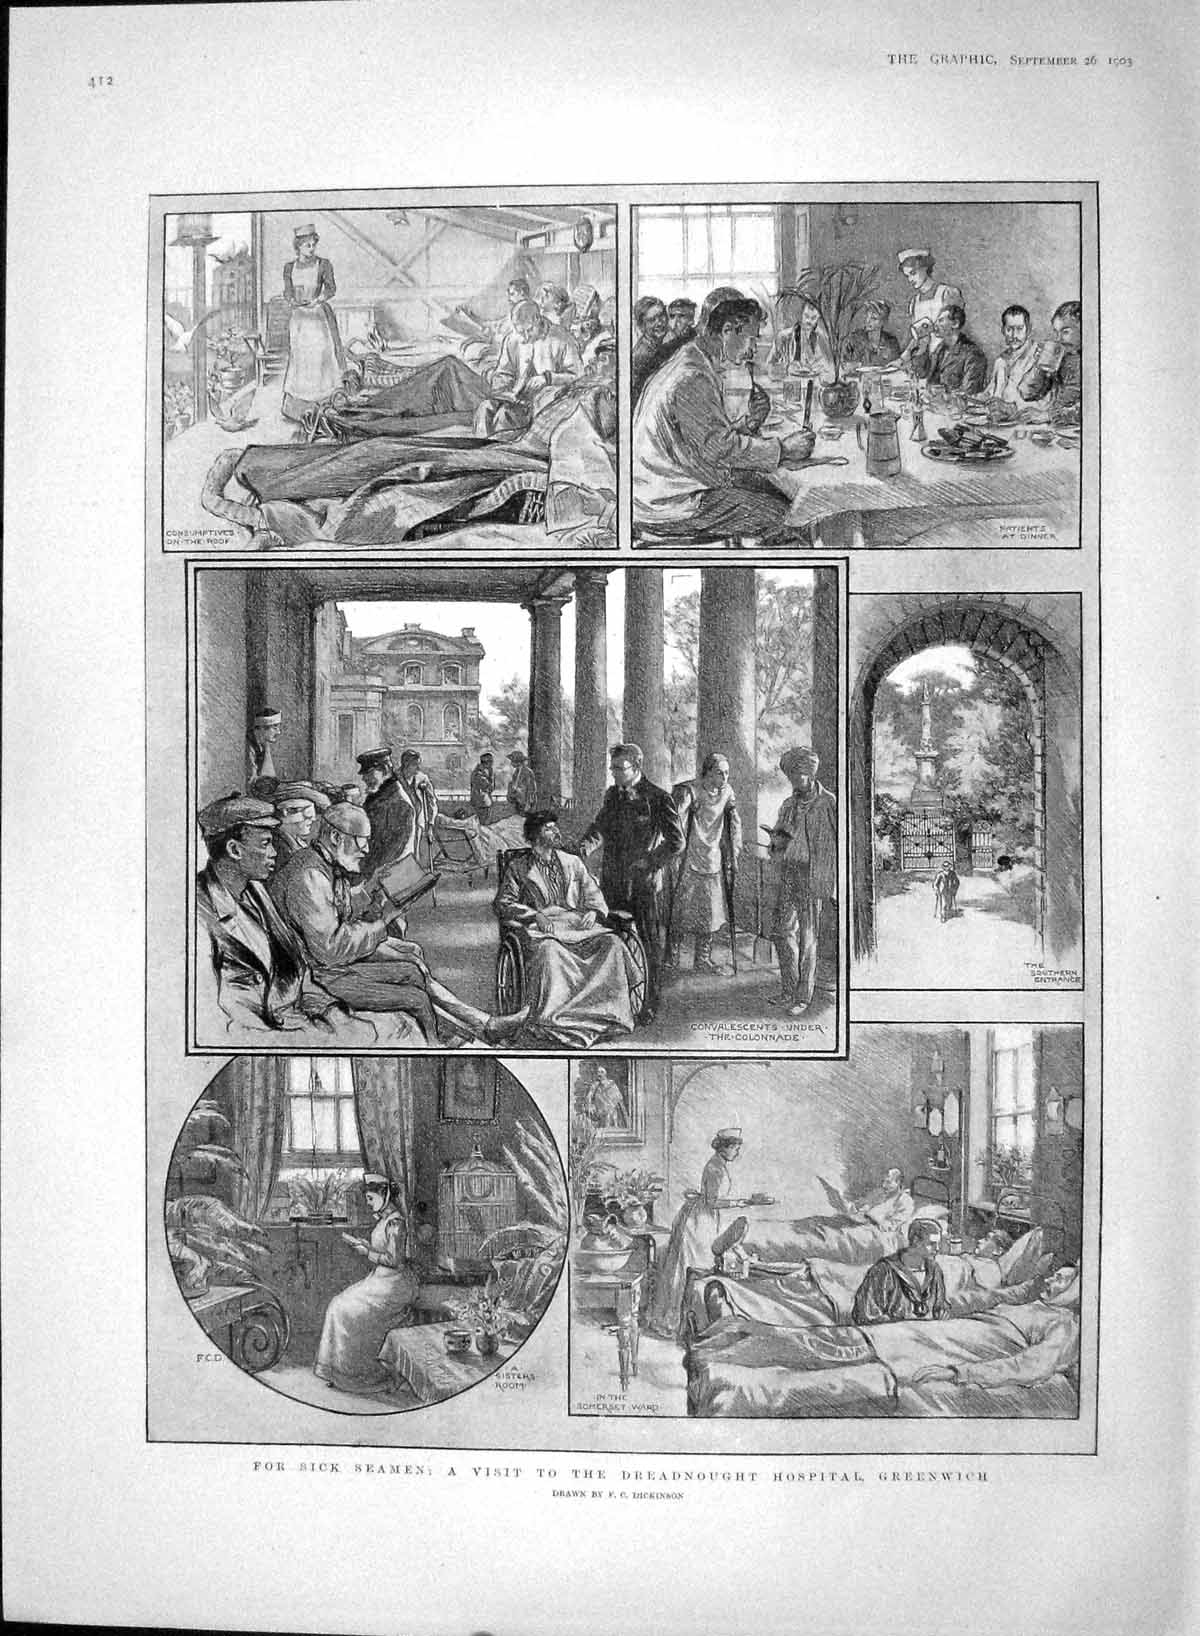 [Print 1903 Dreadnought Hospital Greenwich Sick Seamen 412M168 Old Original]